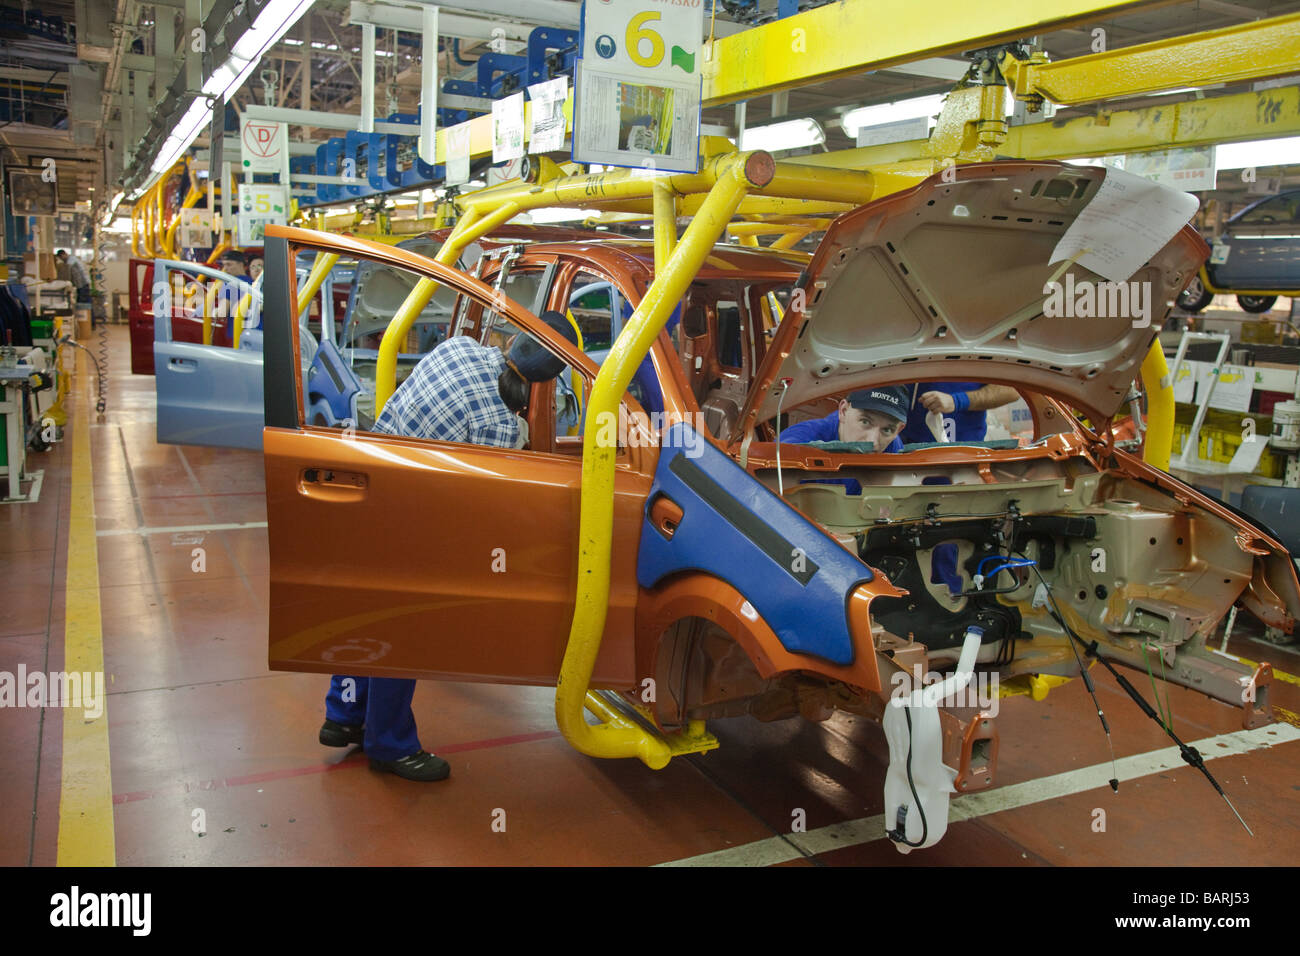 Fiat Panda and Fiat 500 production line in factory, Tychy, Poland - Stock Image